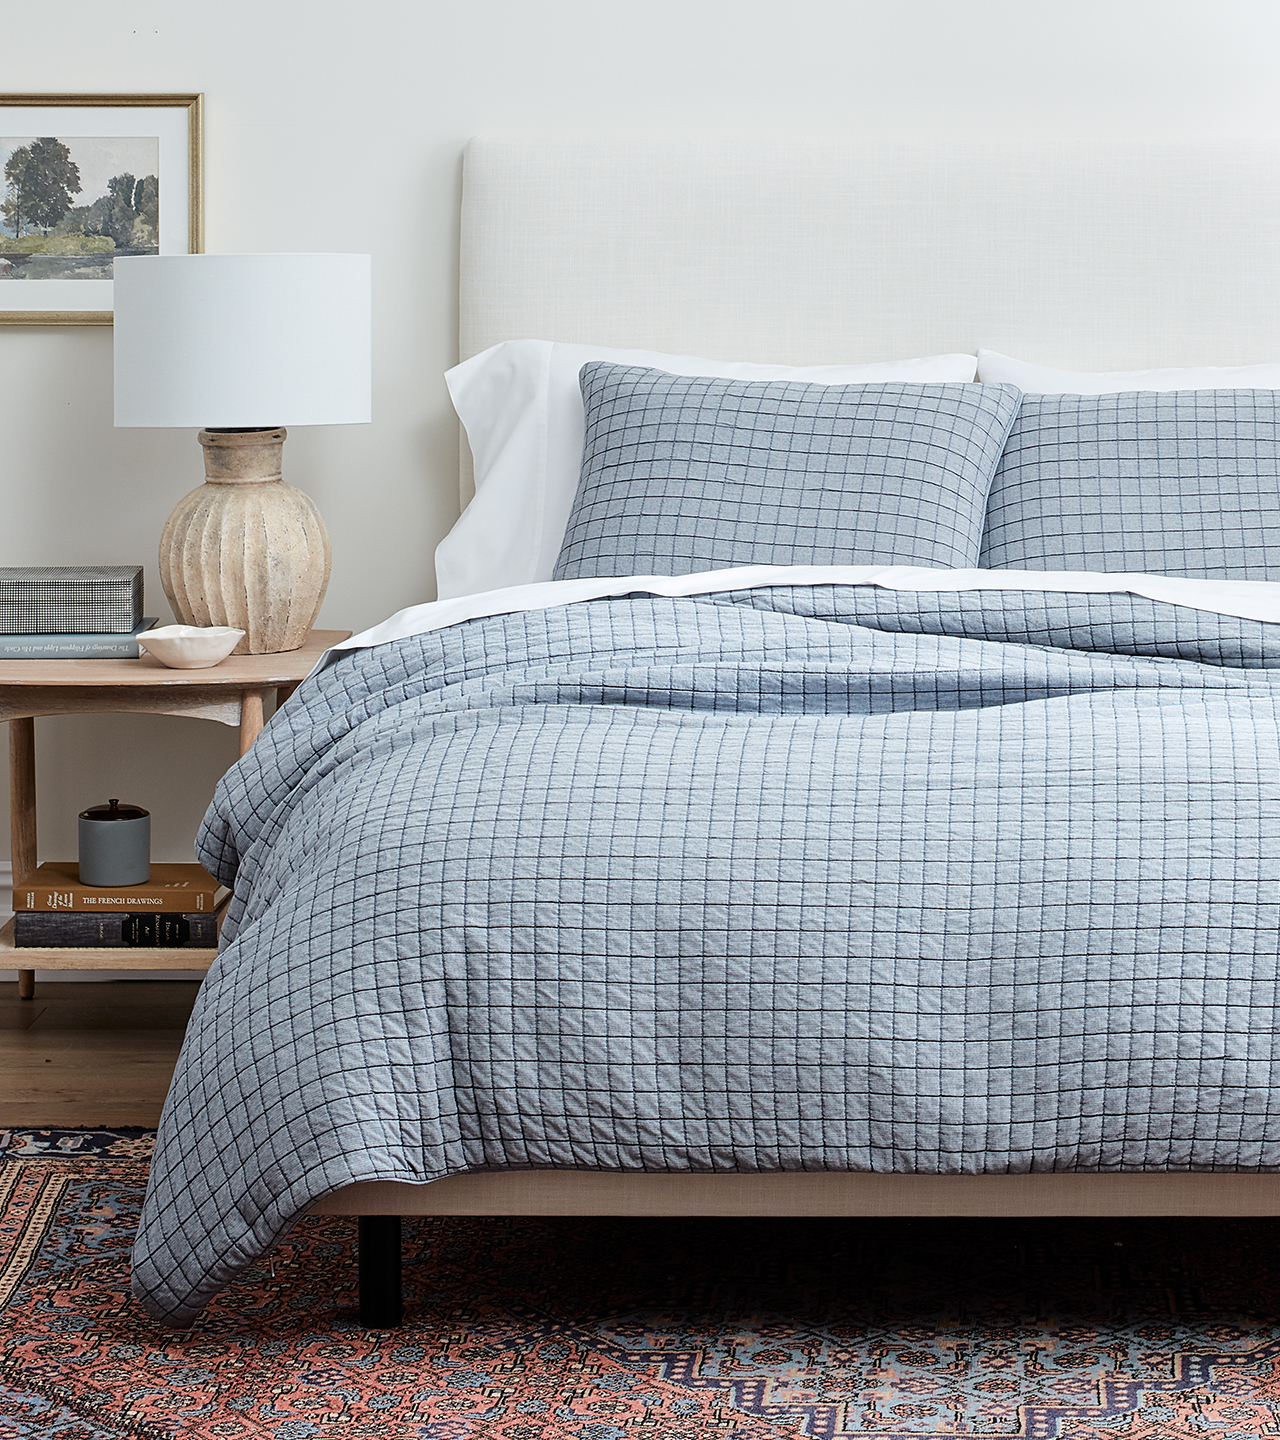 Bed made with Matelasse Duvet Set in Chambray Blue